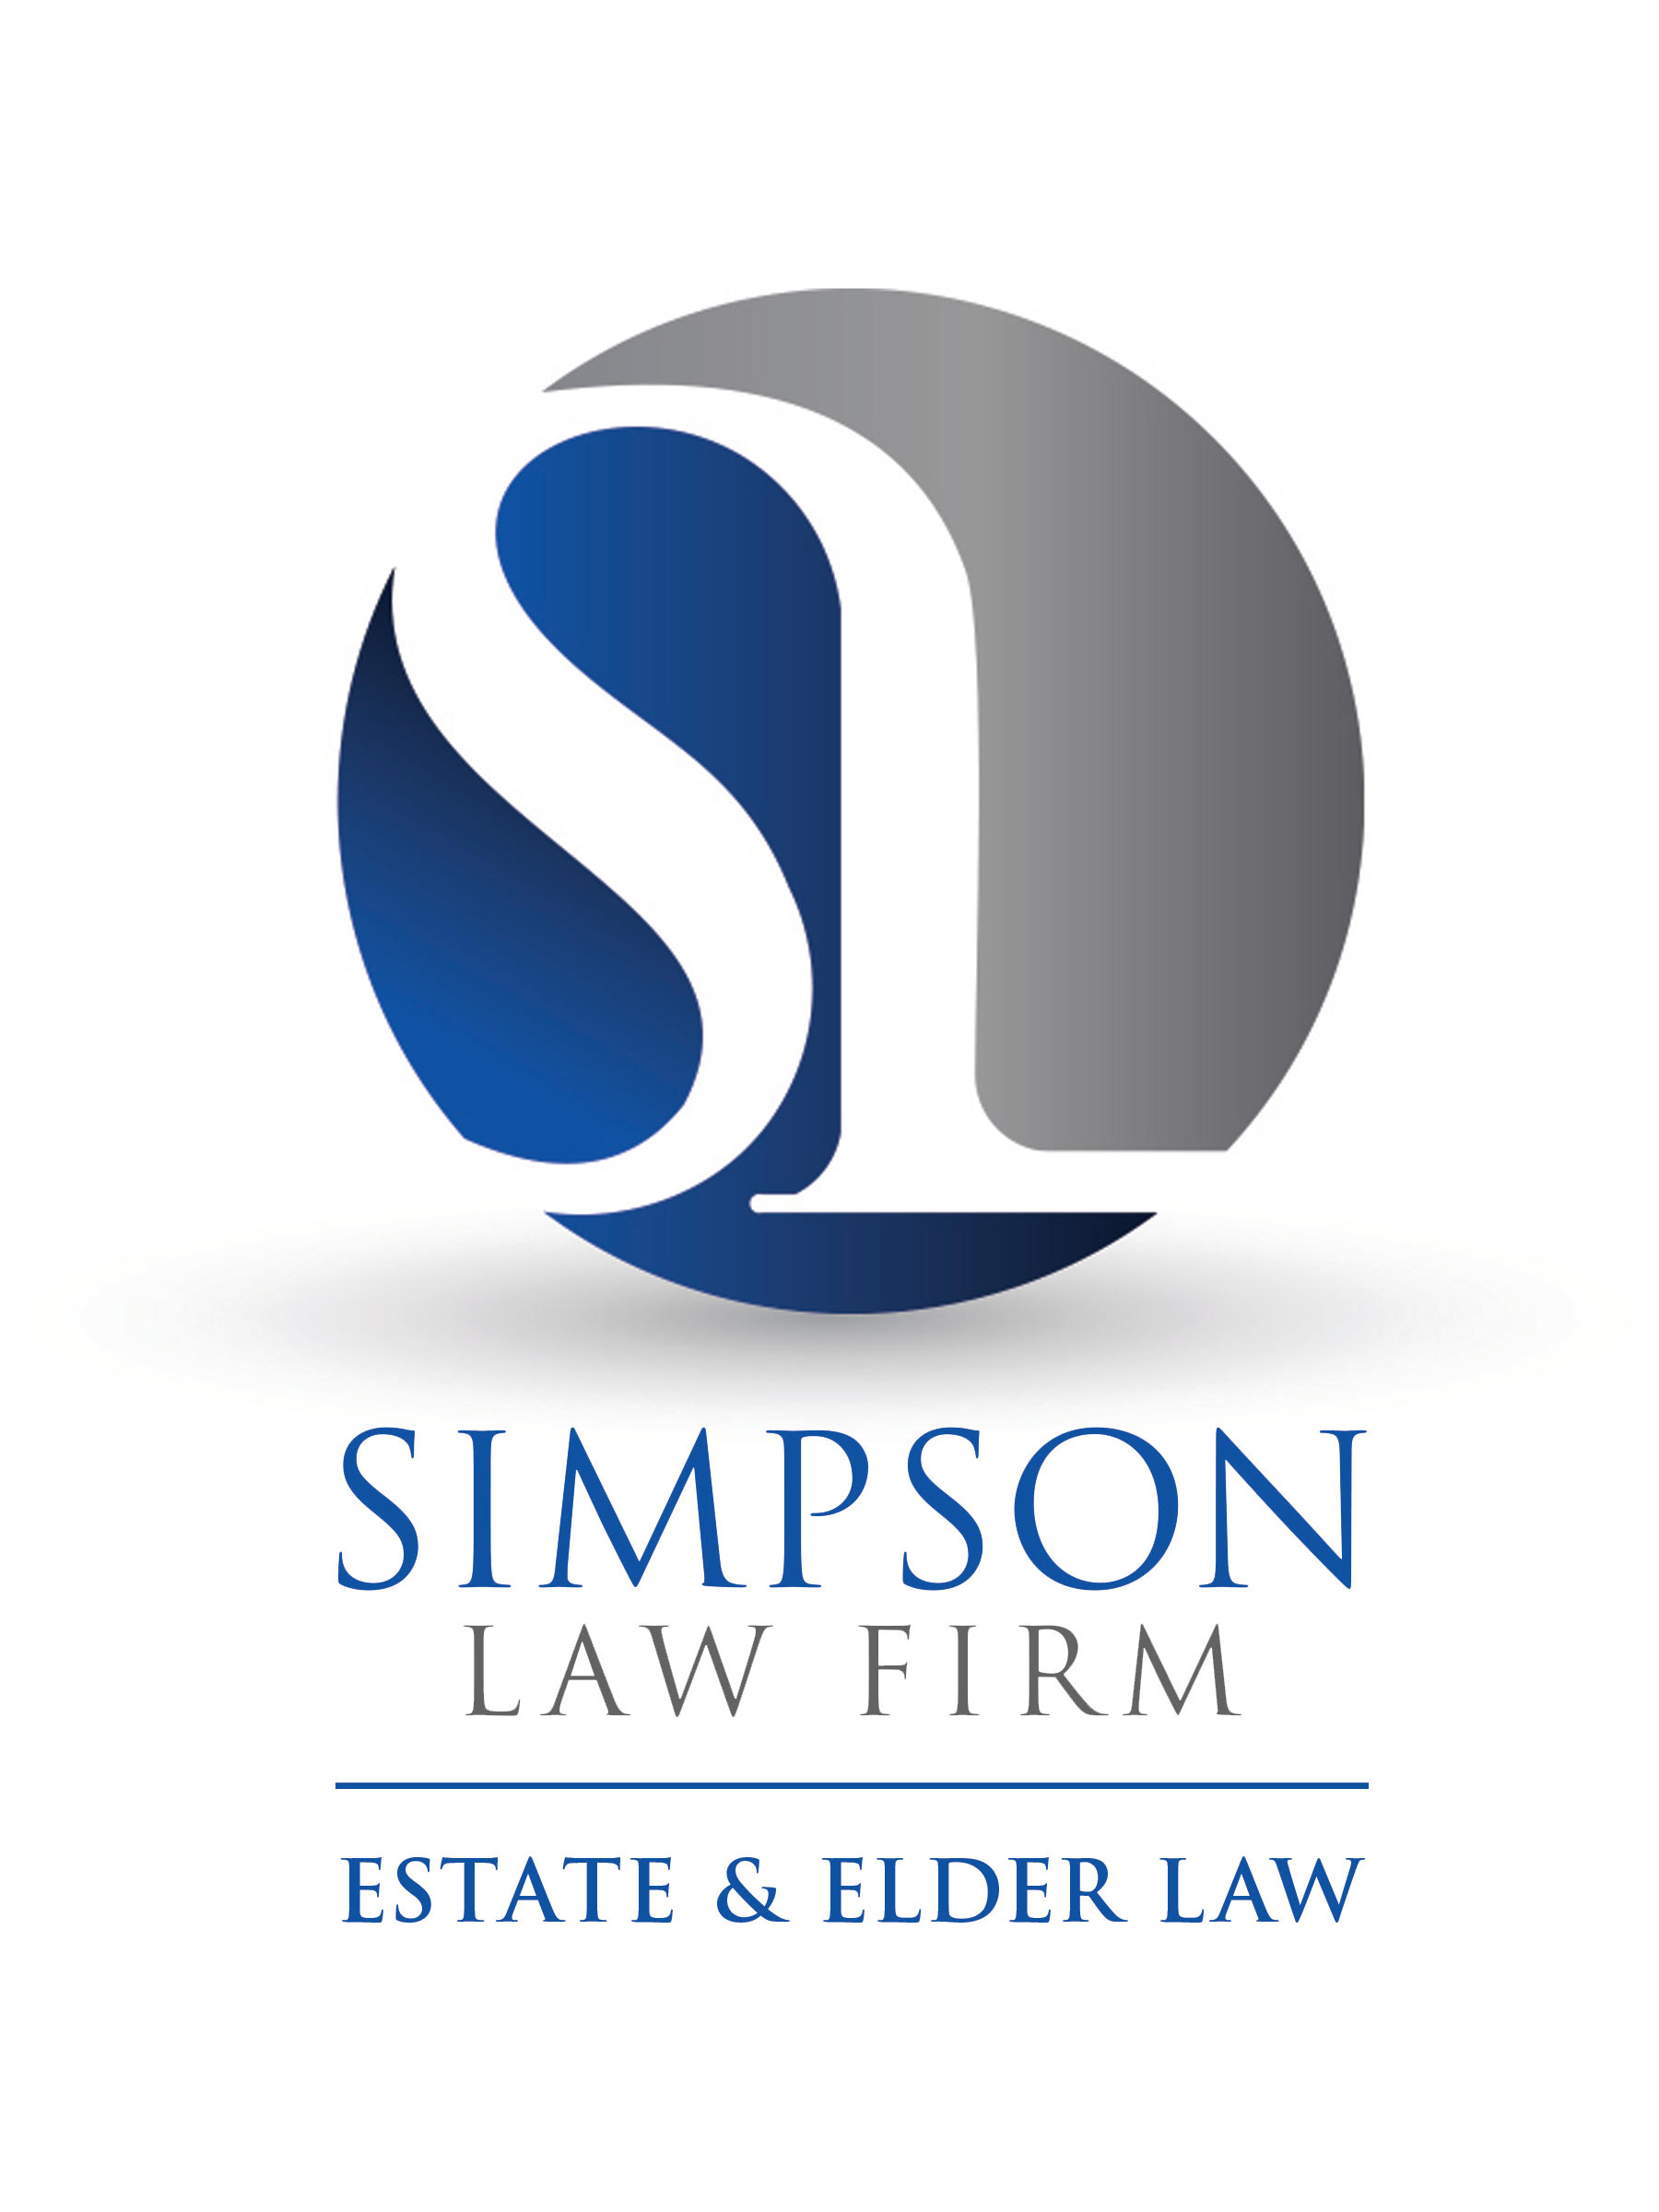 Simpson Law Firm (Caregiver Cafe)